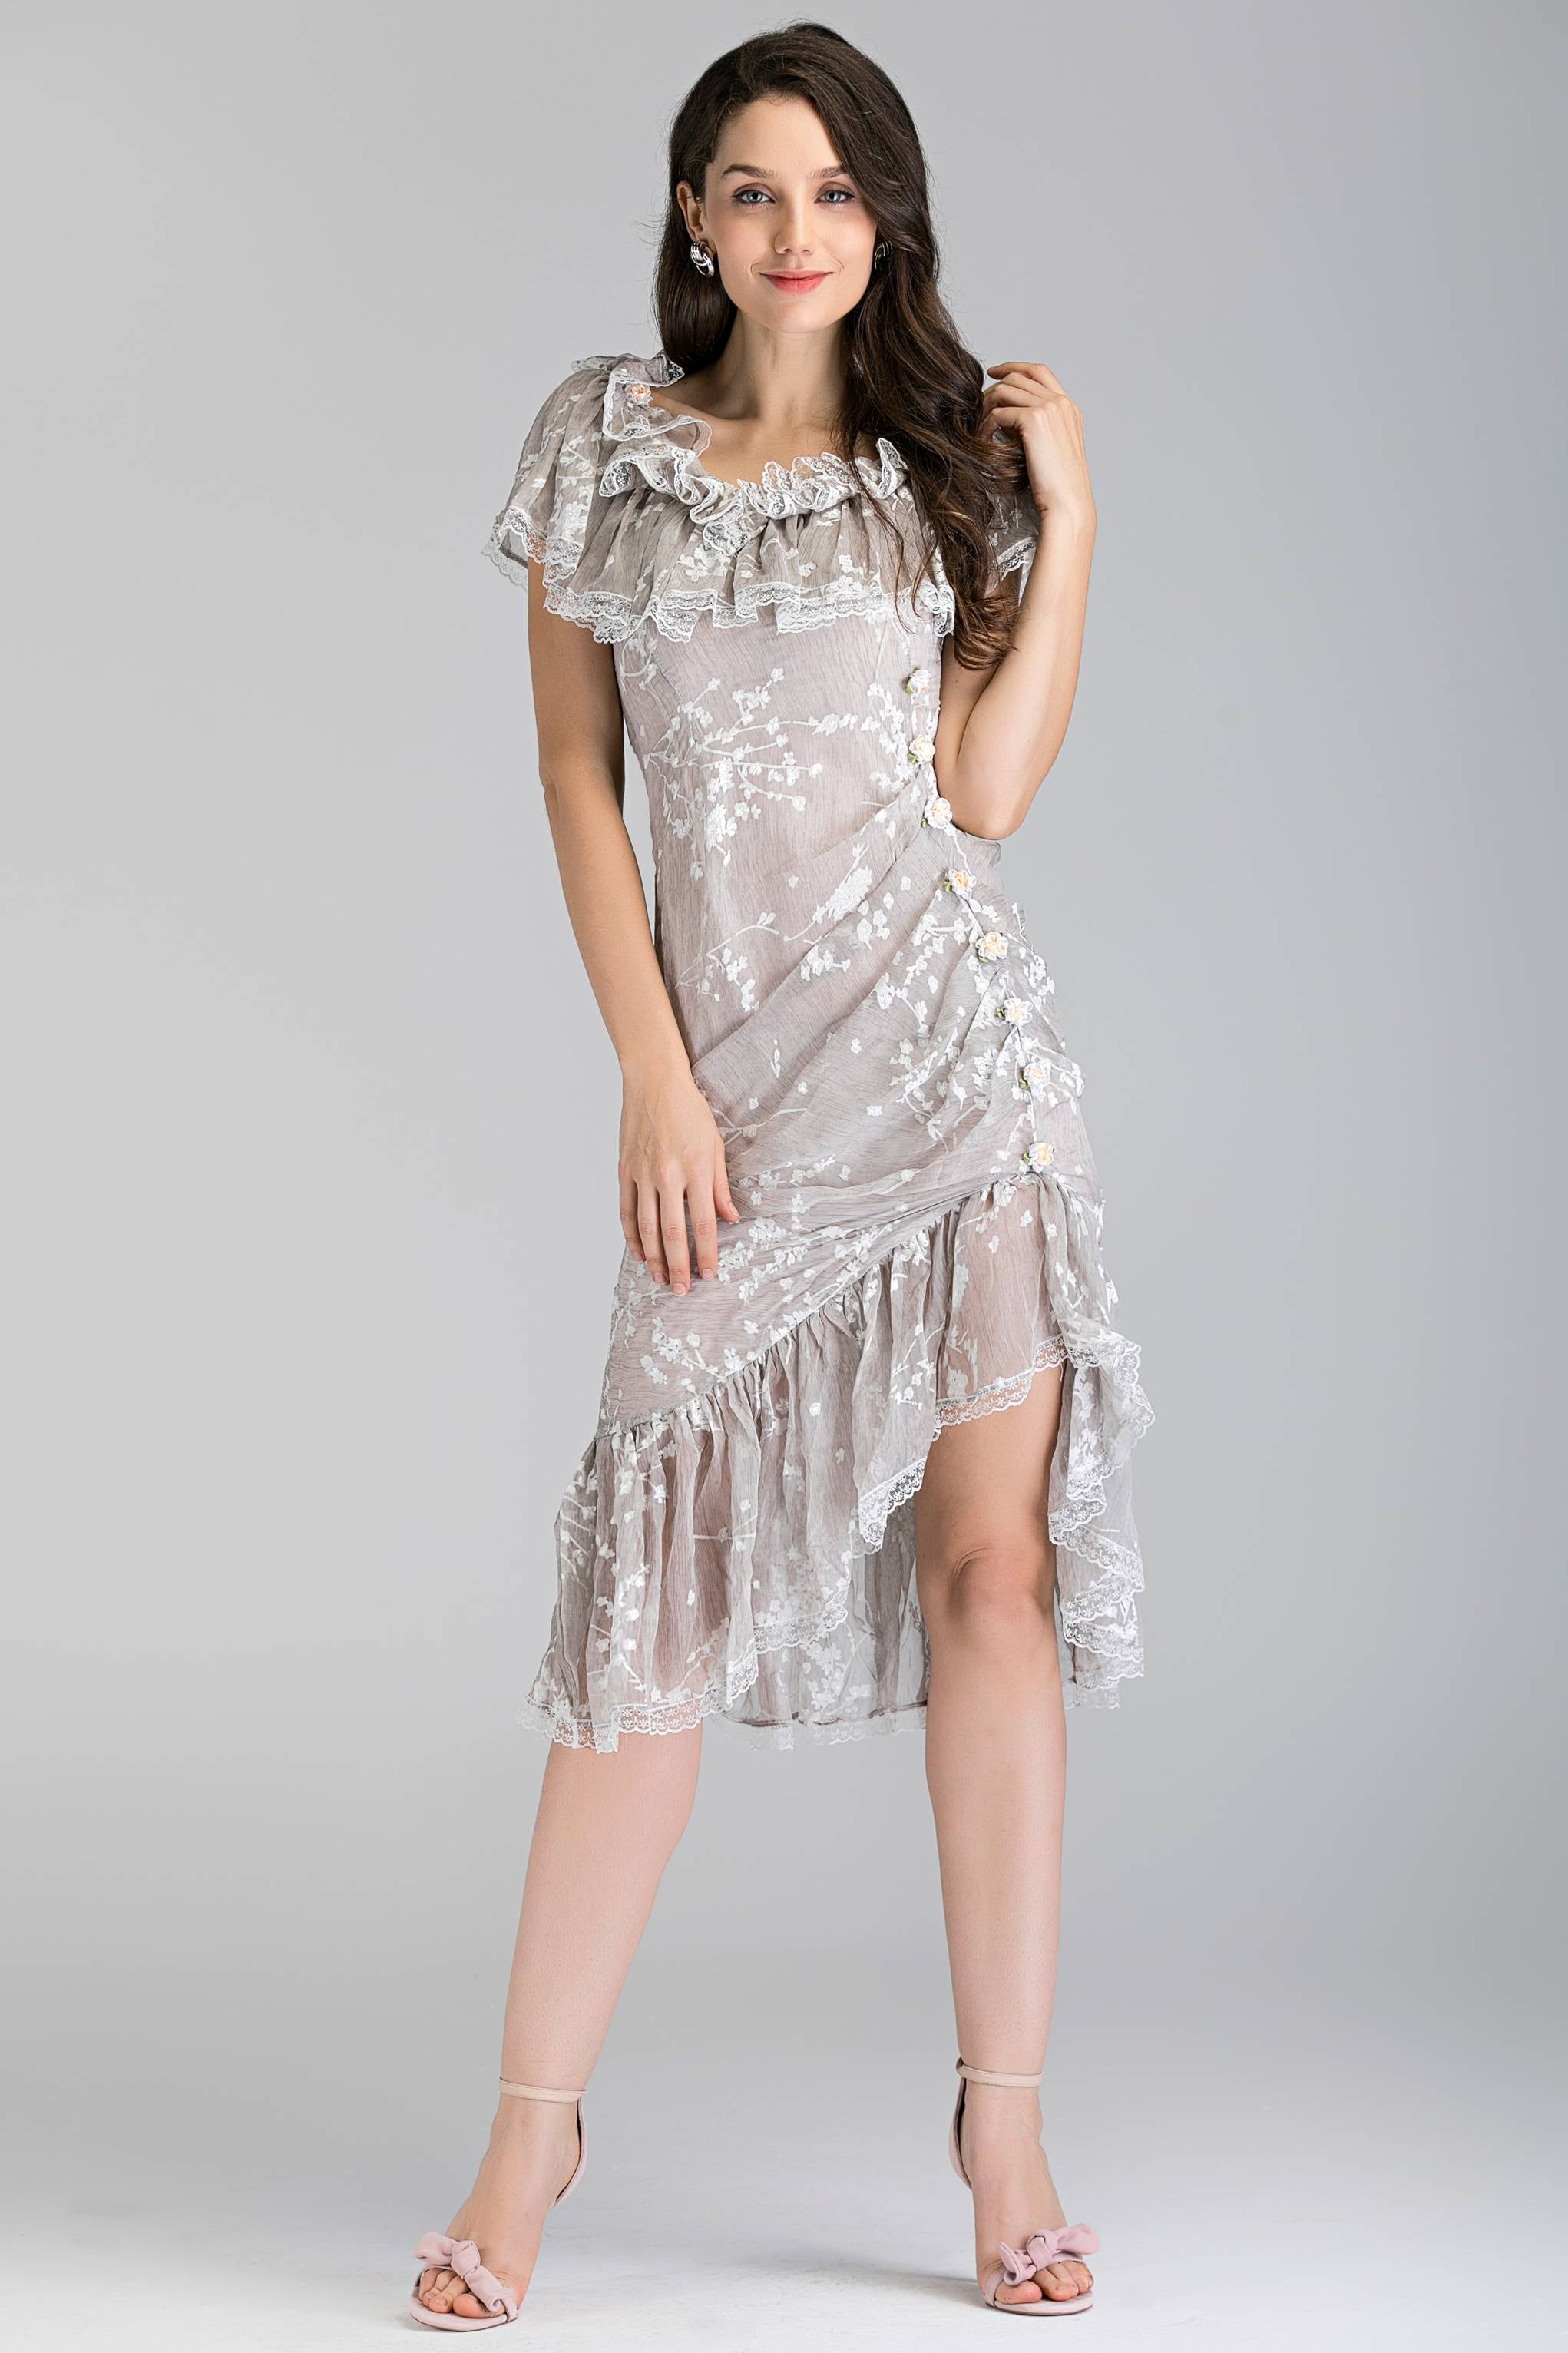 764adaee0d50d Cream Lace Ruffled off the shoulder Trumpet Midi Dress – OwnTheLooks